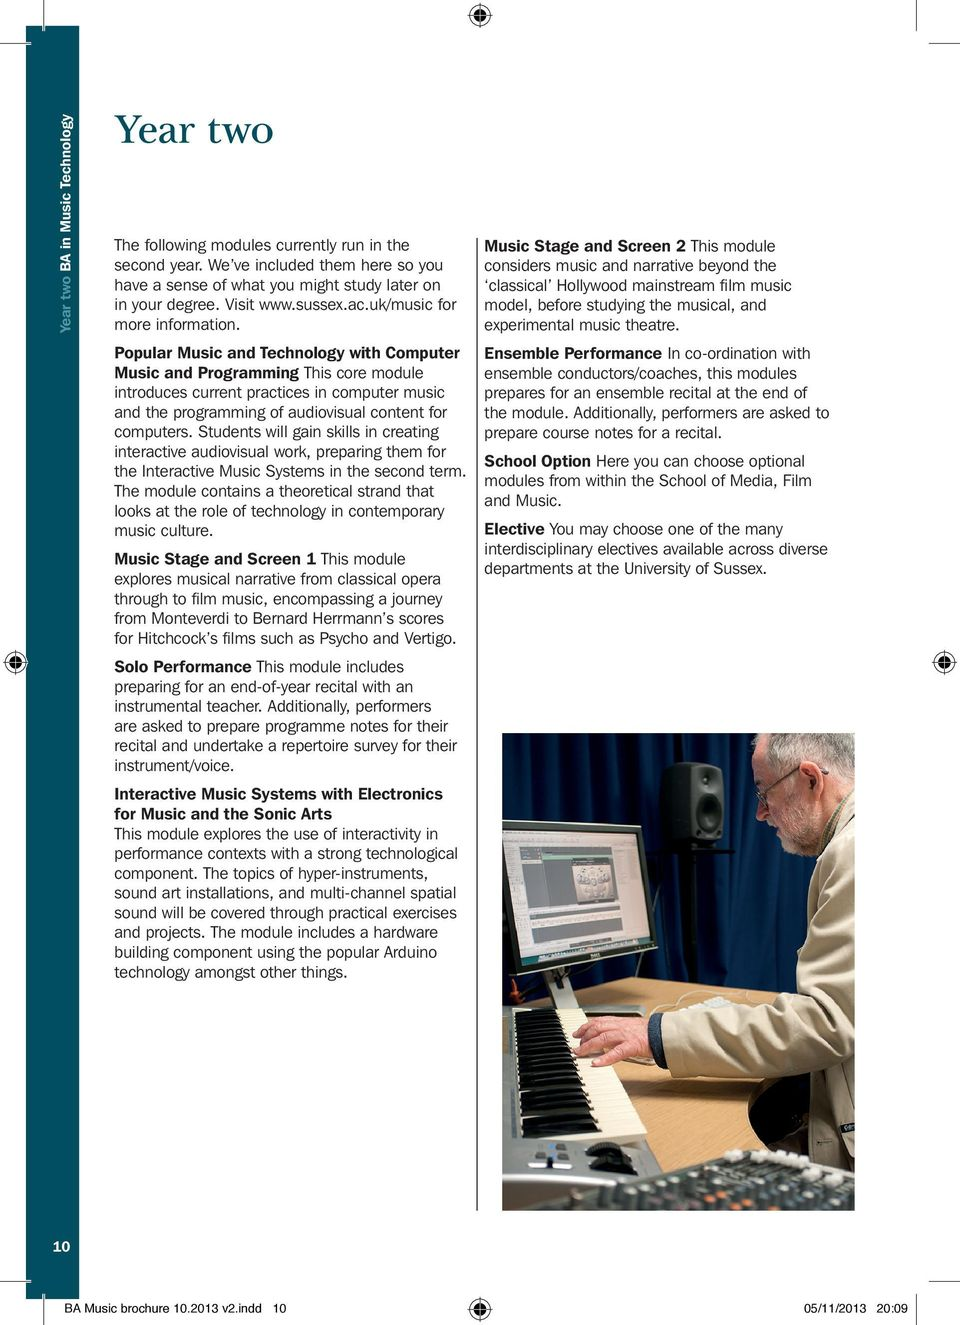 Popular Music and Technology with Computer Music and Programming This core module introduces current practices in computer music and the programming of audiovisual content for computers.